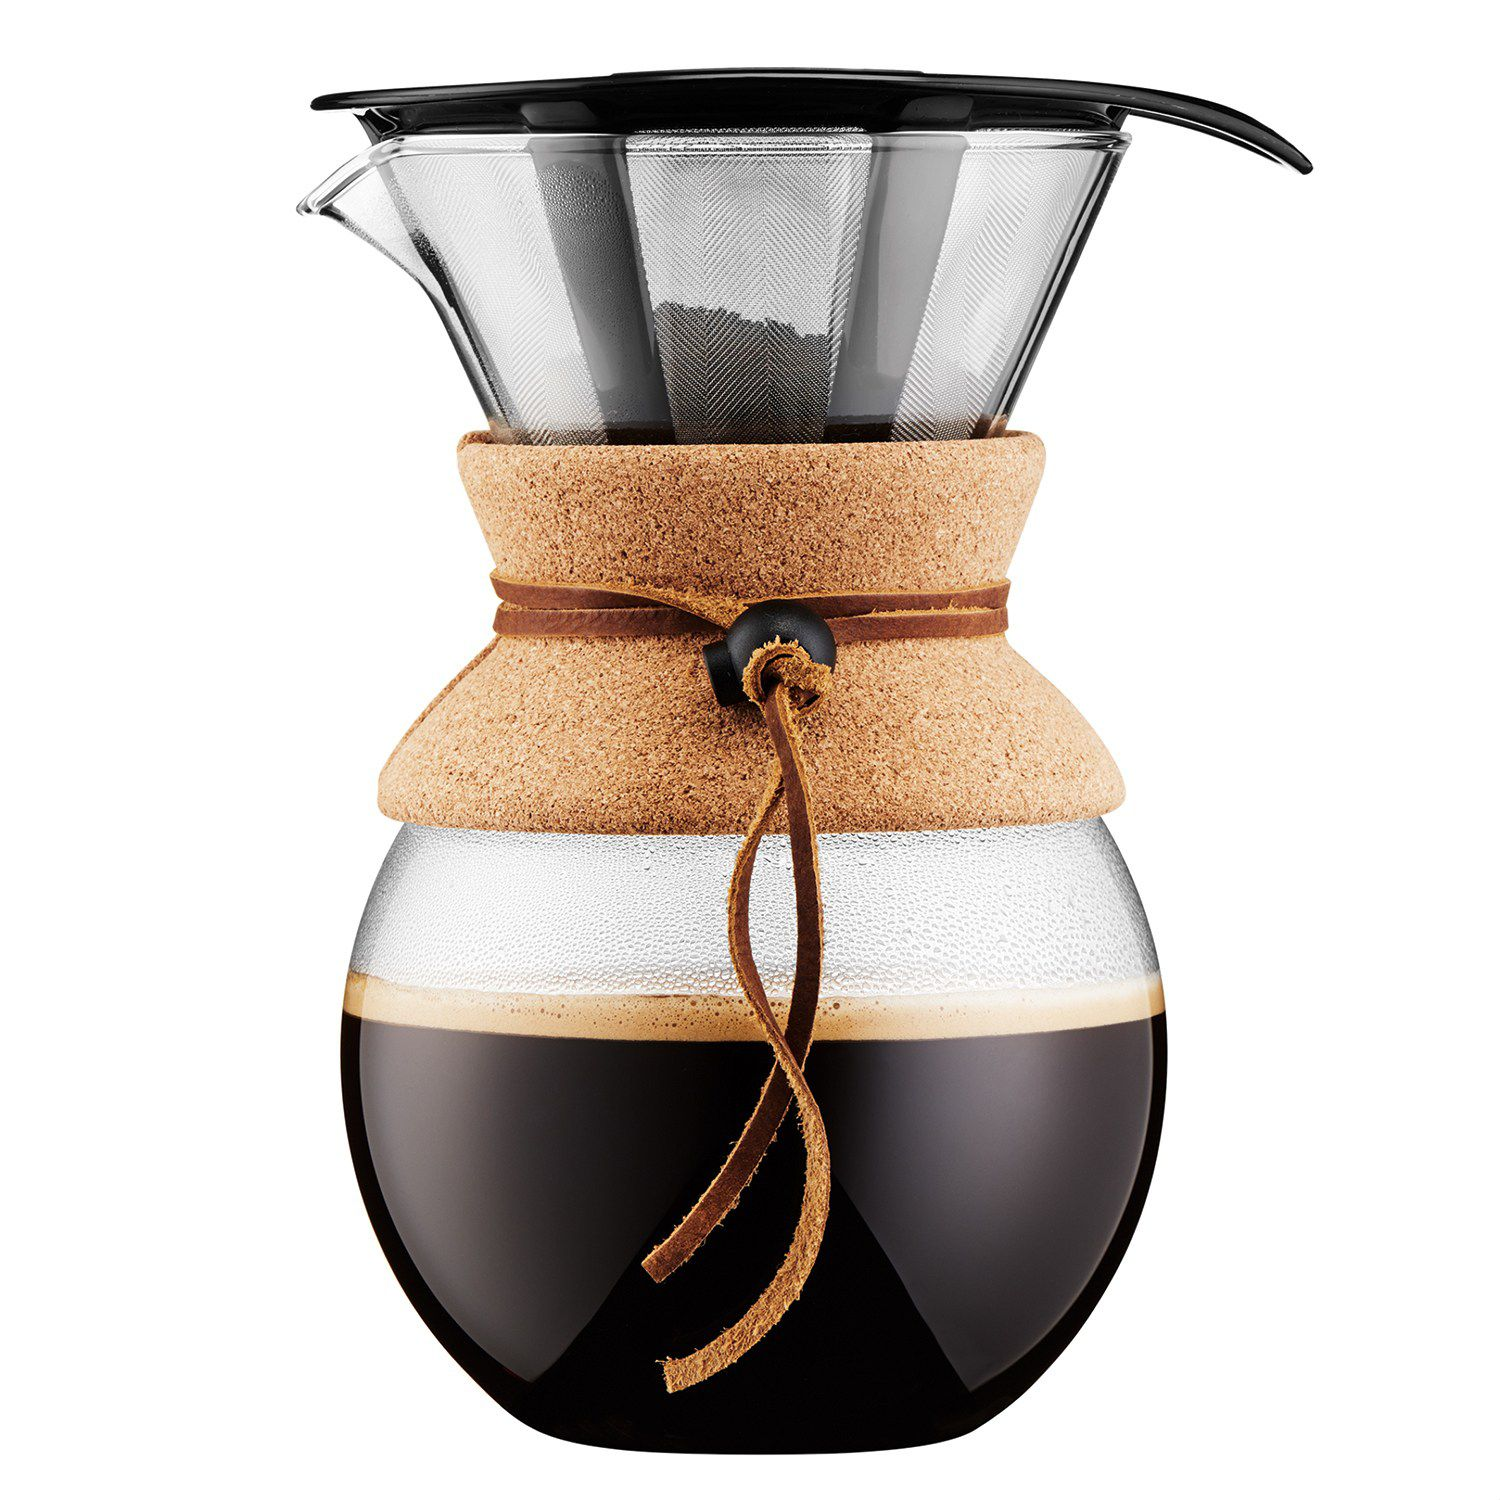 Bodum 34-oz. Cork Band Pour-Over Coffee Maker